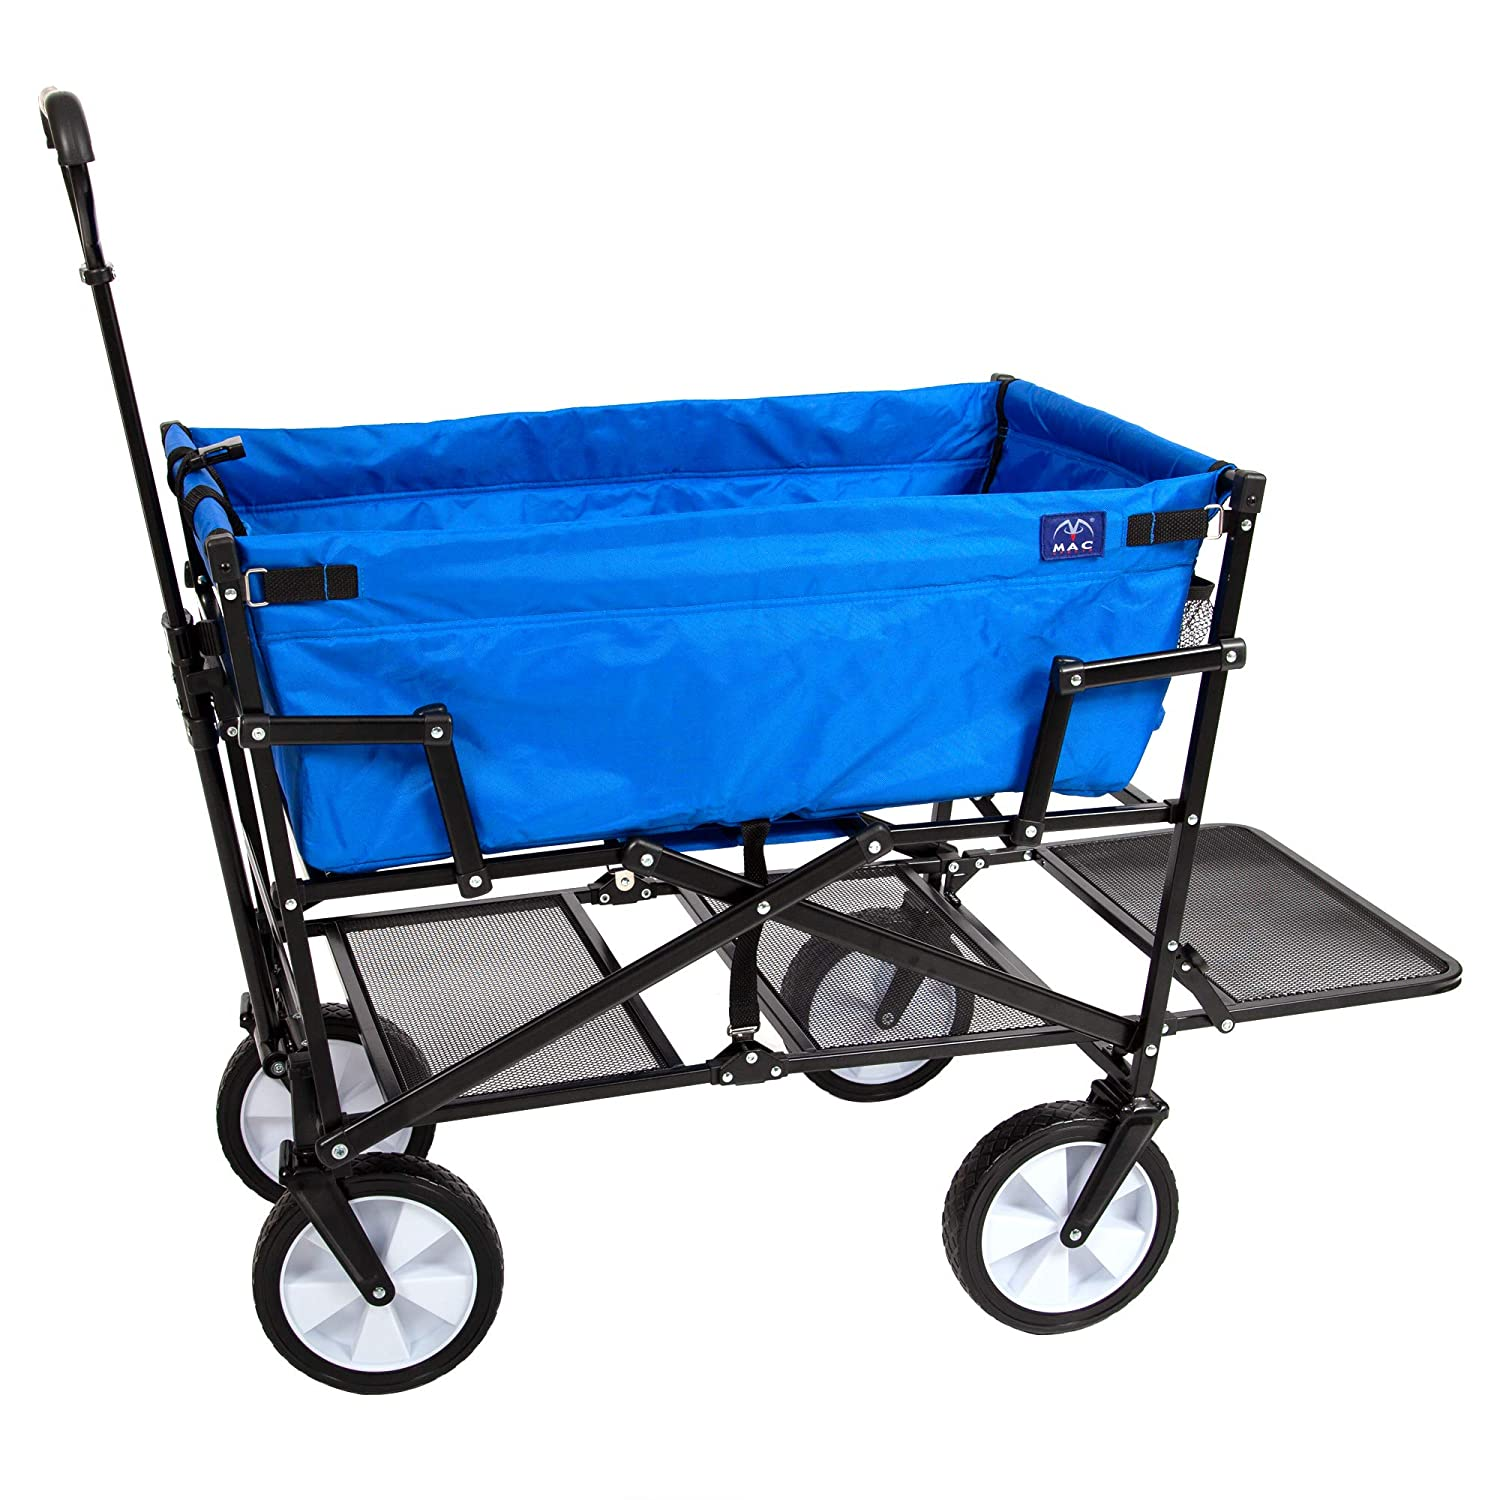 Mac Sports Double Decker Collapsible Outdoor Utility Wagon | Folding Pull Cart, for Sports Baseball Pool Camping Fishing, Collapsable Fold up Wagon with Wheels, Heavy Duty Steel, Royal Blue